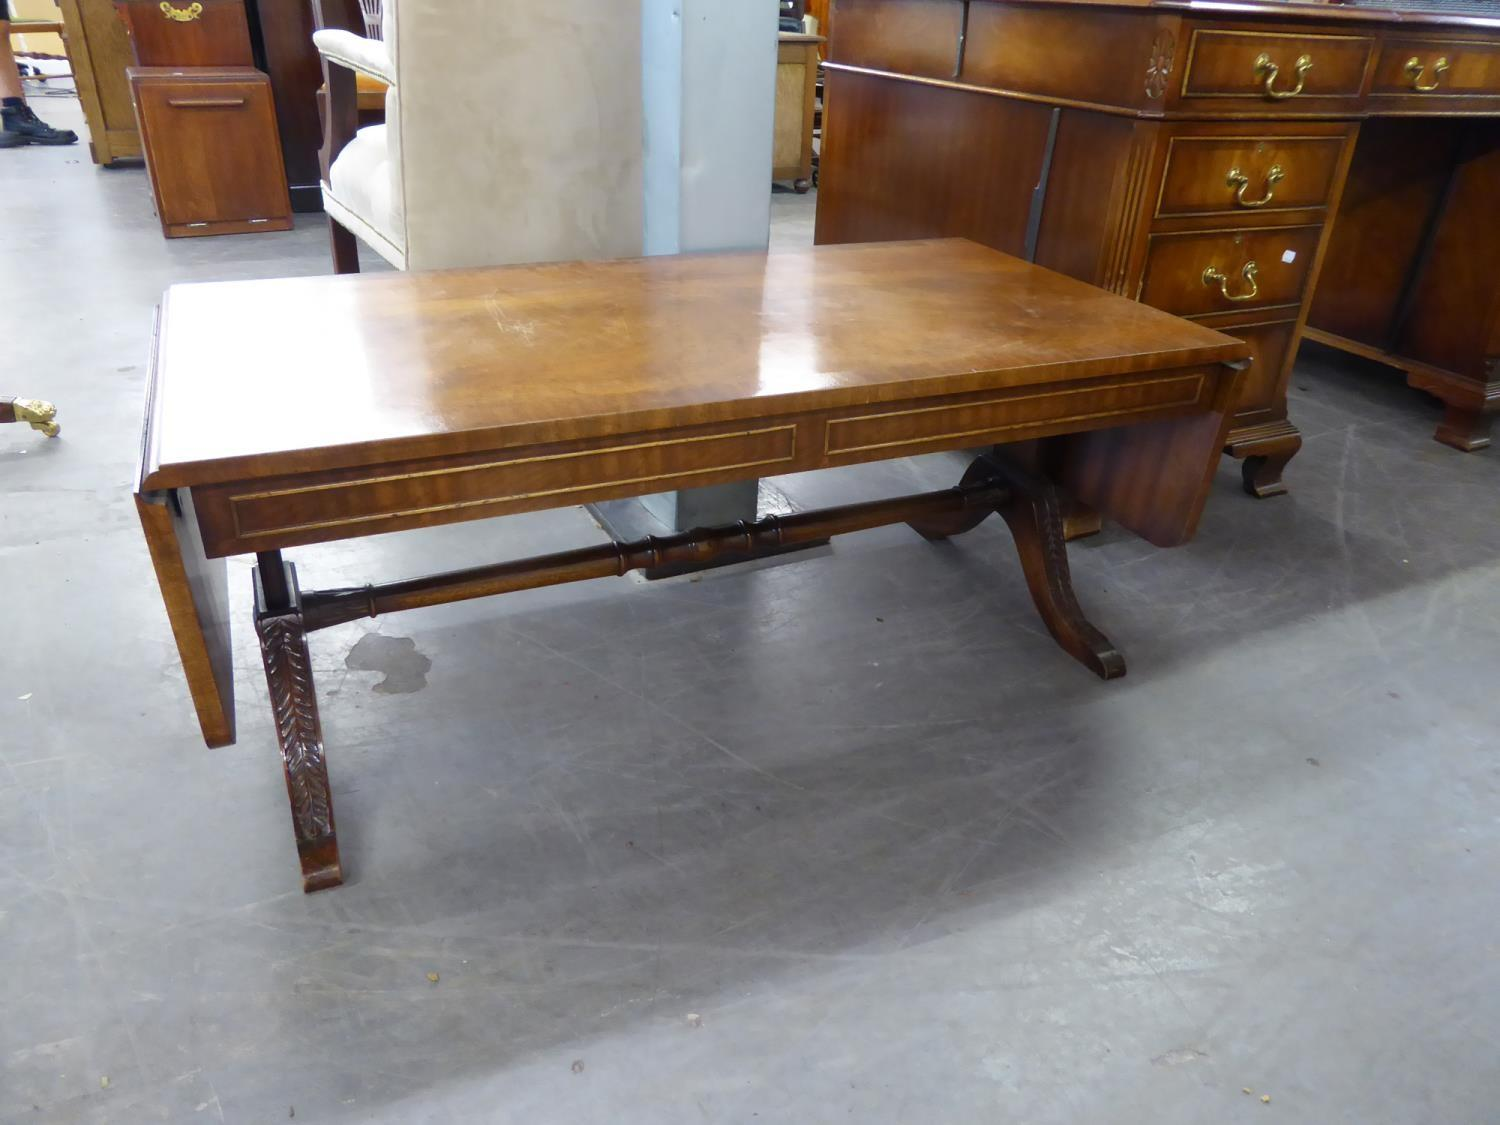 *BEVAN FUNNELL REGENCY STYLE MAHOGANY LOW SOFA TABLE TYPE OBLONG COFFEE TABLE WITH FALL ENDS, ON